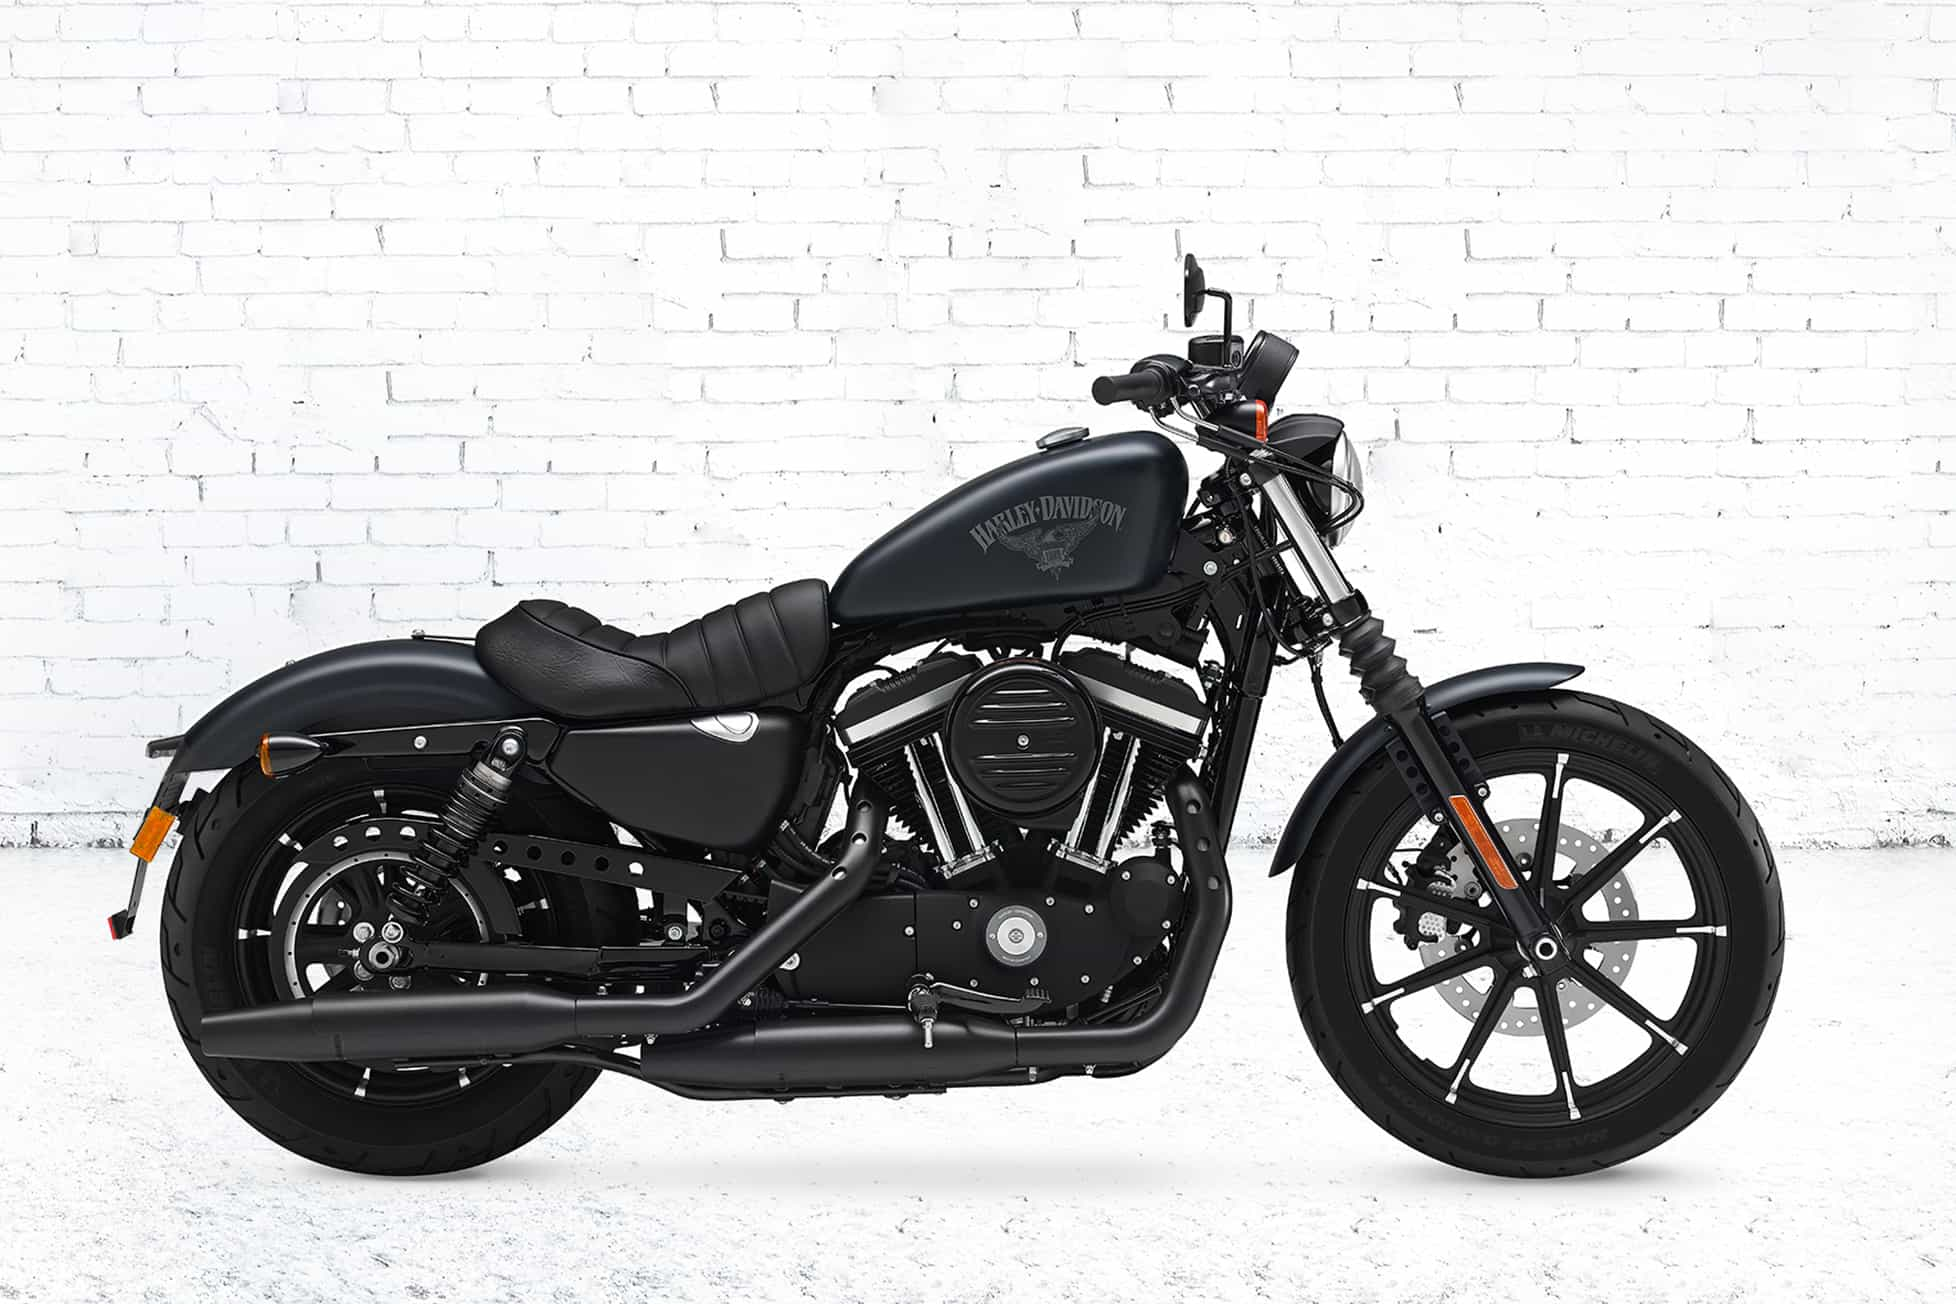 2018 sportster iron 883 specs pricing harley davidson uk rh harley davidson  com Harley-Davidson Sportster 883 Super Low 2008 harley davidson sportster  ...